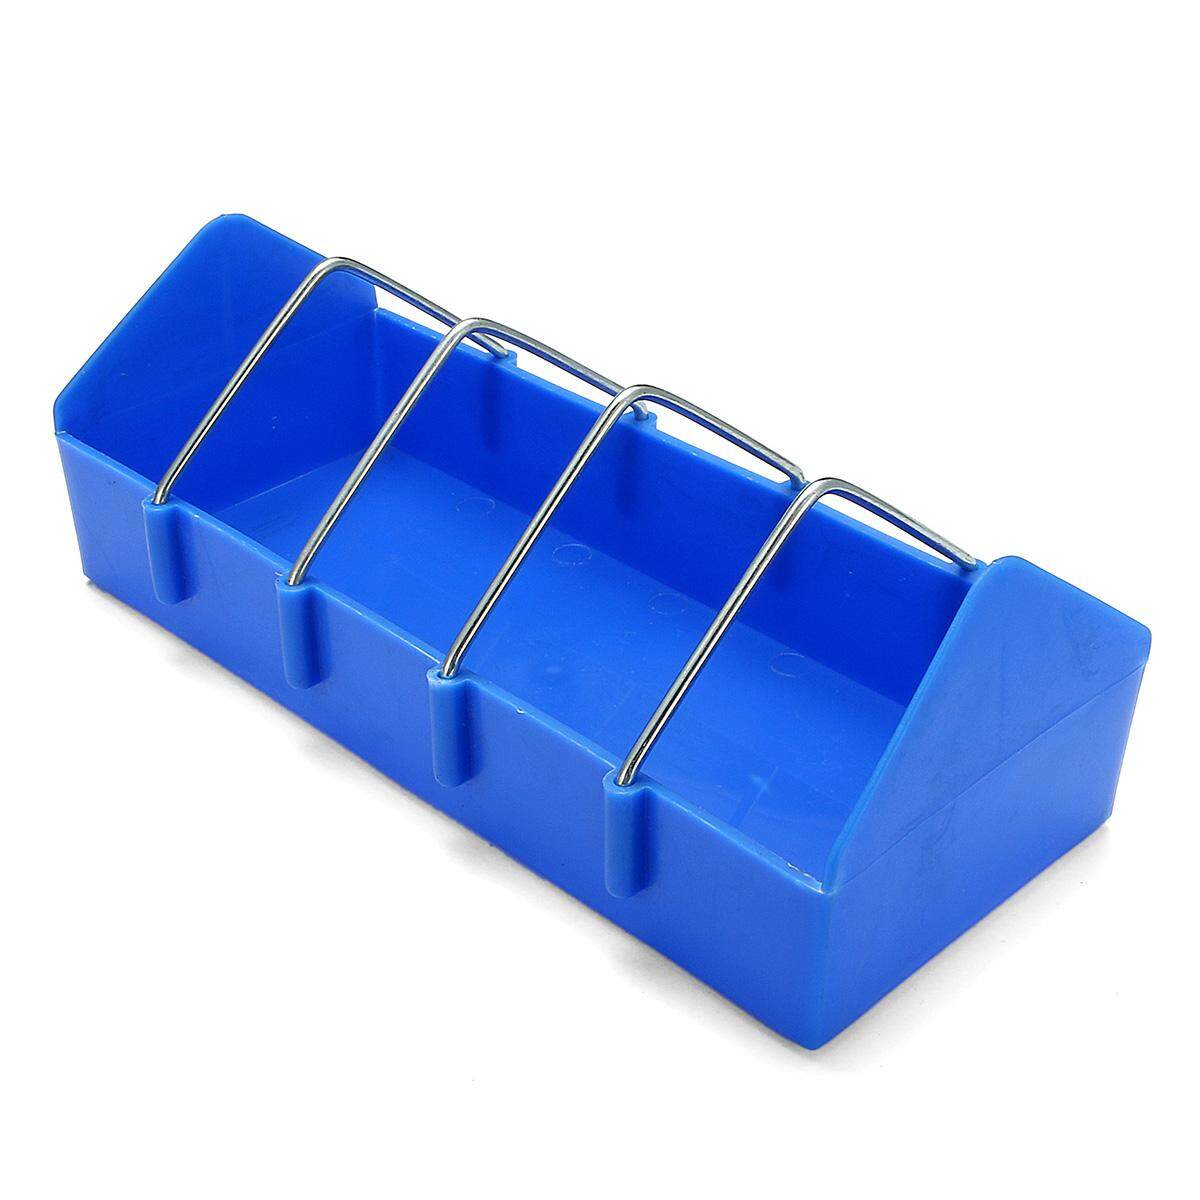 Buy Sell Cheapest Ztstore 10 Pigeon Best Quality Product Deals Gold Sandal Jepit Pria Ultralite Echo Black G8503m Feeder Poultry Chicken Feed Drinker Cage Plastic Birds Storage Cup